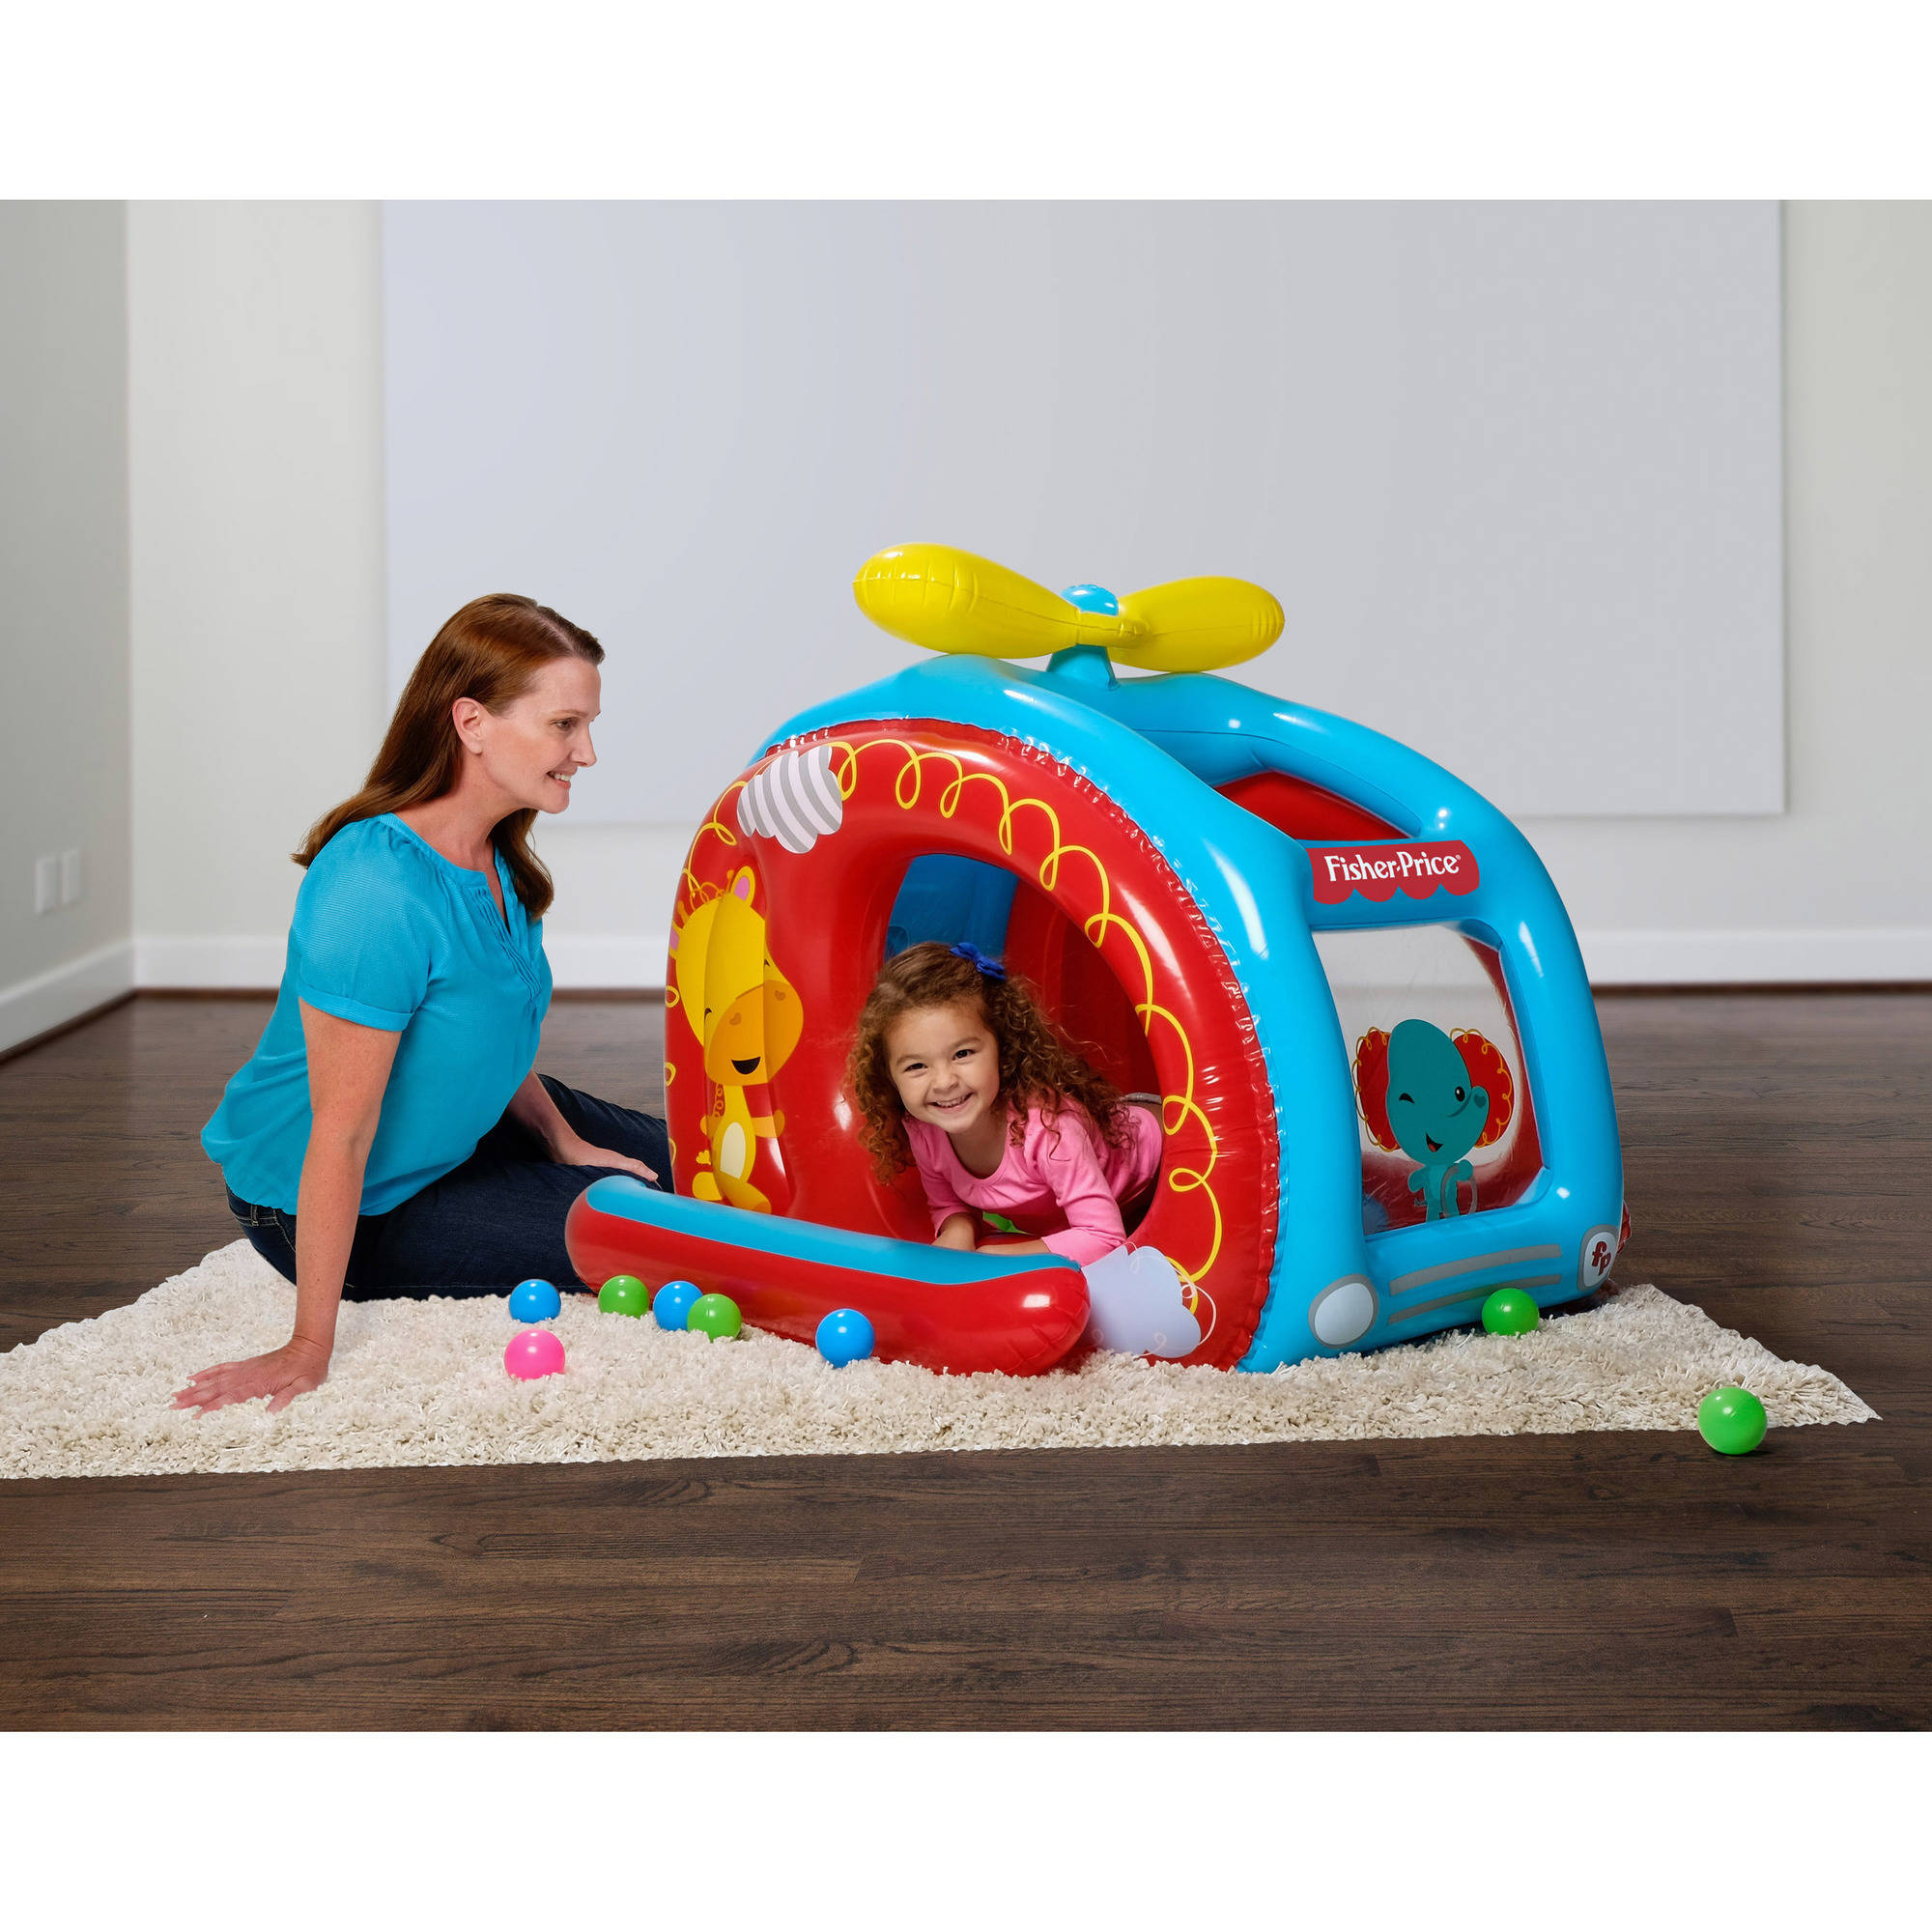 "Fisher-Price Helicopter Ball Pit, 54"" x 44"" x 38"""